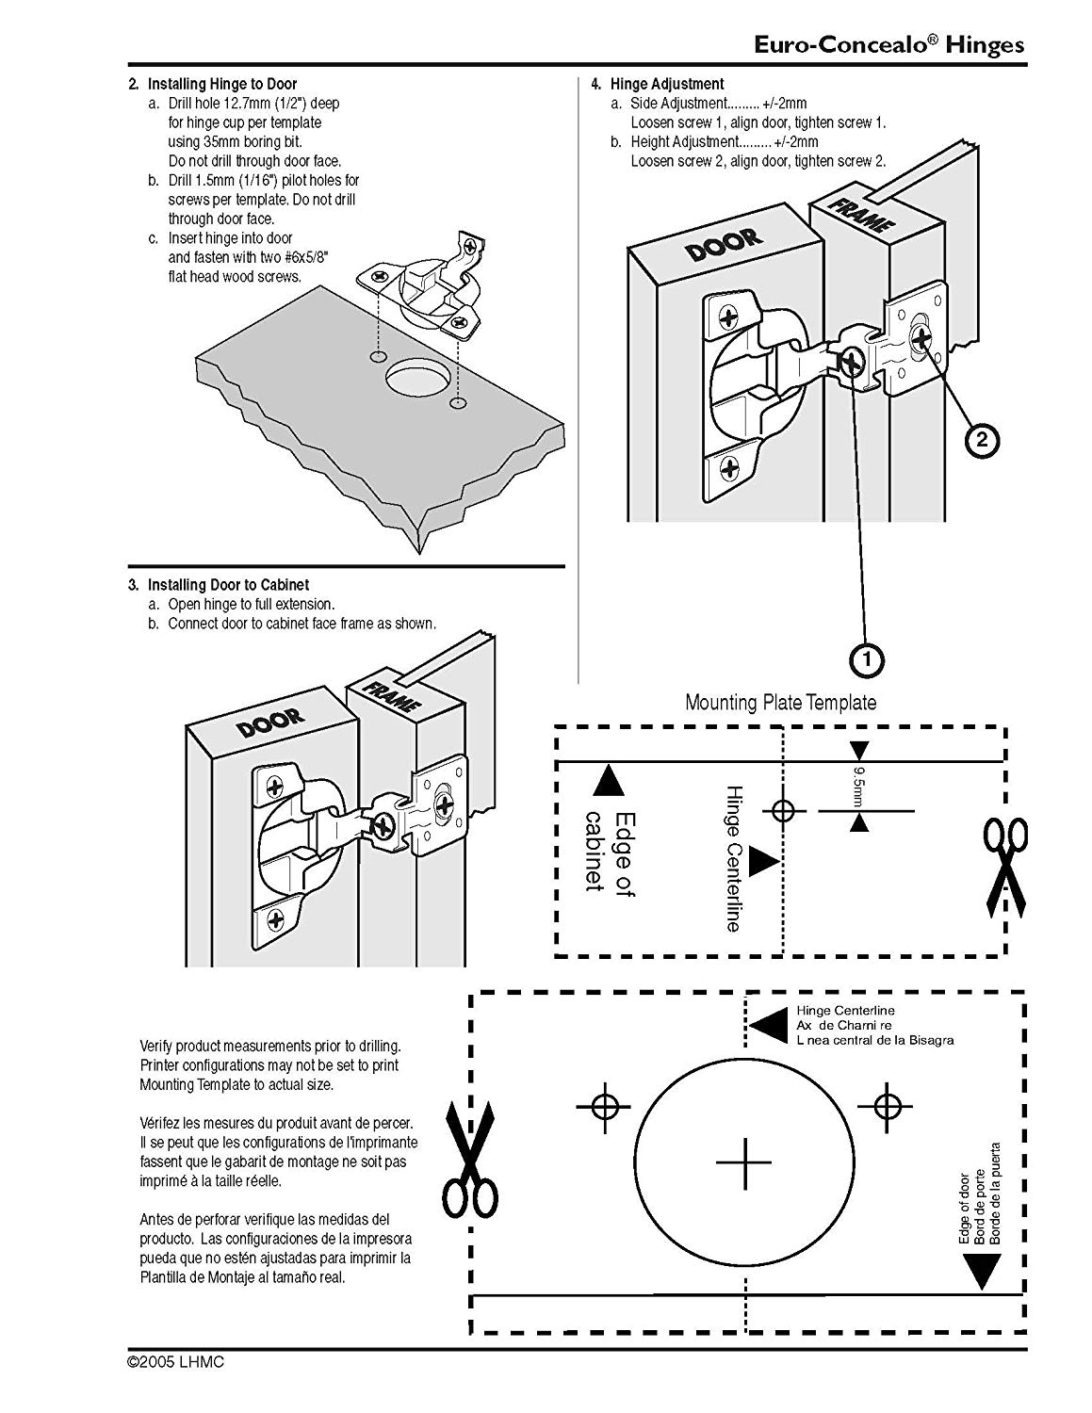 how to install piano hinge on corner cabinet how to adjust cabinet door hinges step by step hettich corner hinges ikea kitchen cabinets how to adjust merillat cabinet hinges 1092x1413